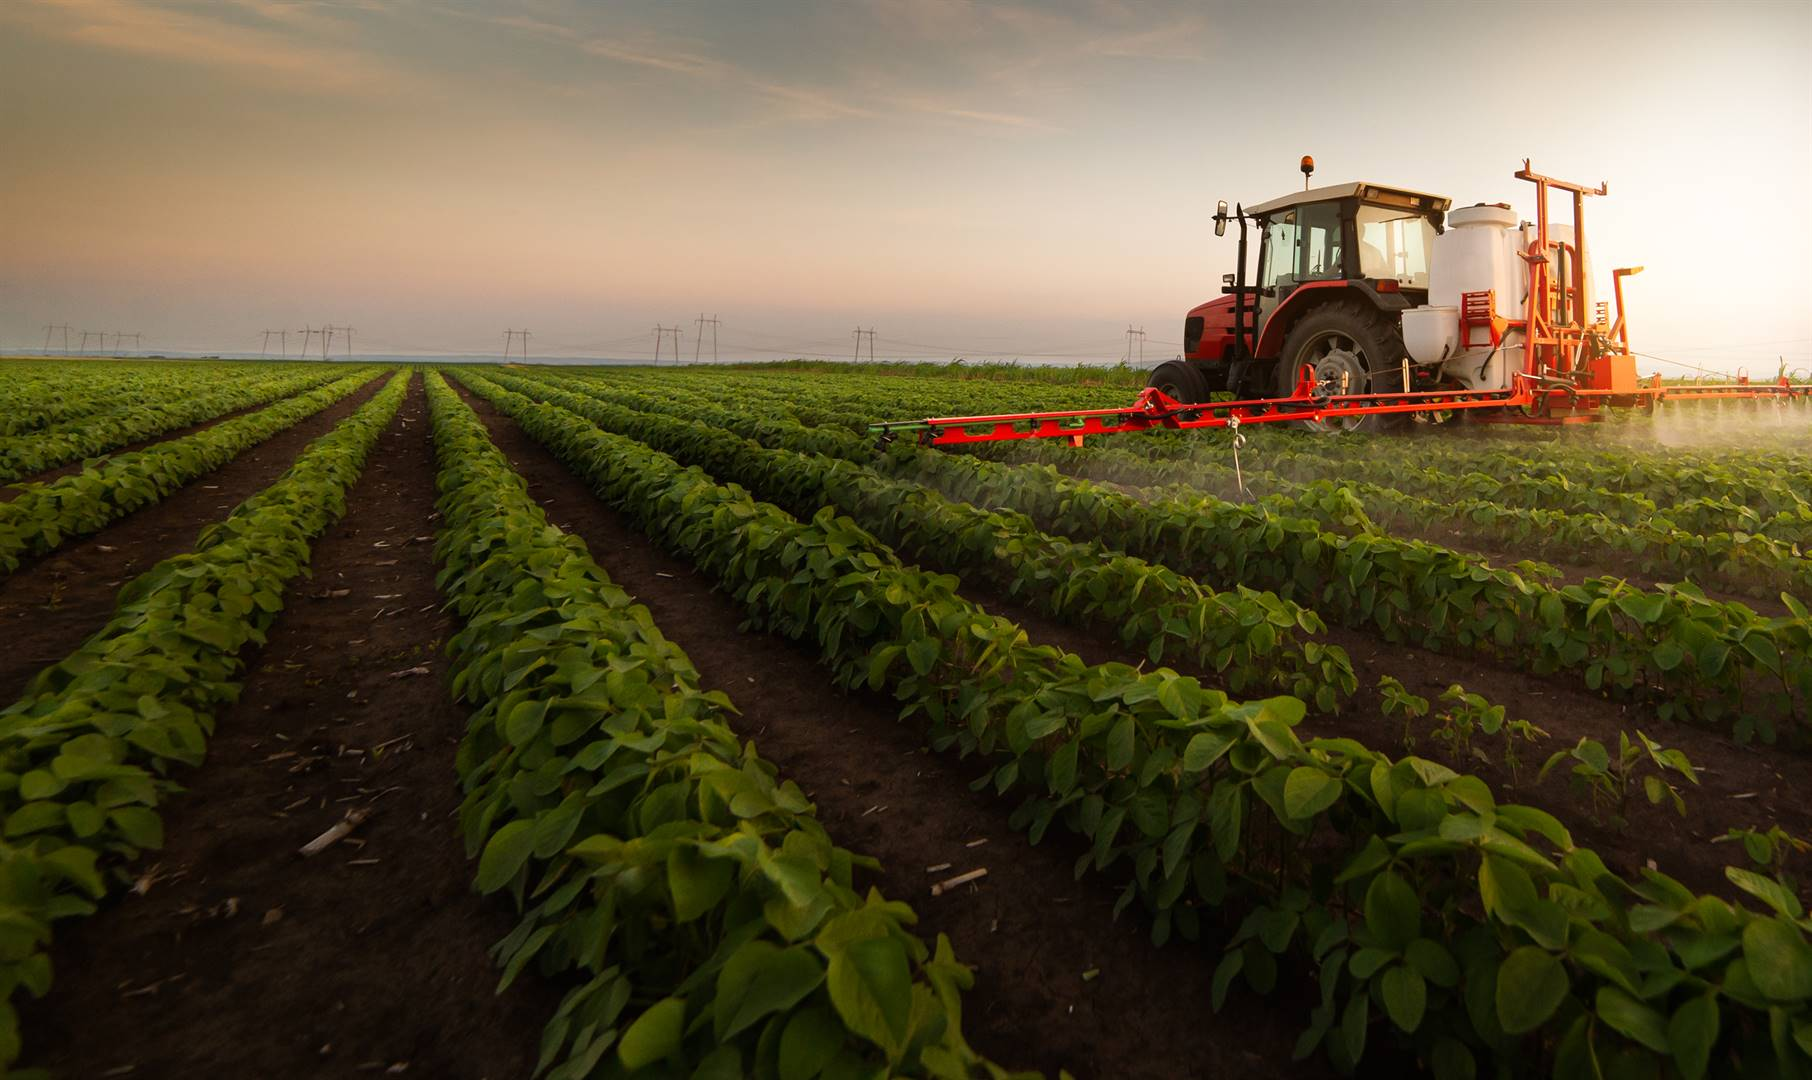 This is a typical South African land reform story characterised by infighting among claimants who have seen productive agricultural land lying fallow or established tourism businesses crumbling. Picture: iStock/Gallo Images